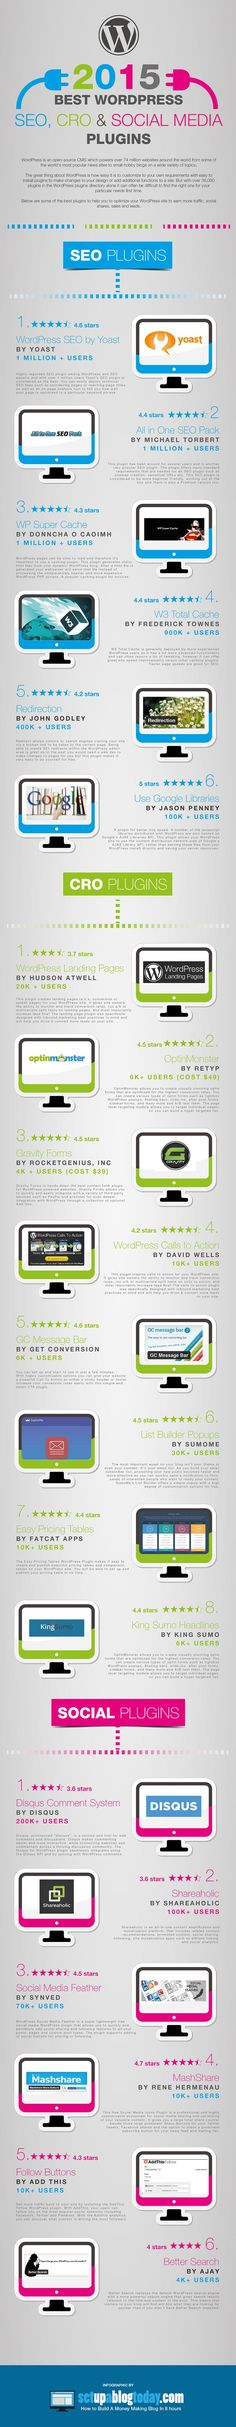 Best WordPress Plugins for SEO #SEOtips and tricks #infographic Also See : http://www.solvemyhow.com/2016/12/hexlock-review-best-app-locker-for-android.html